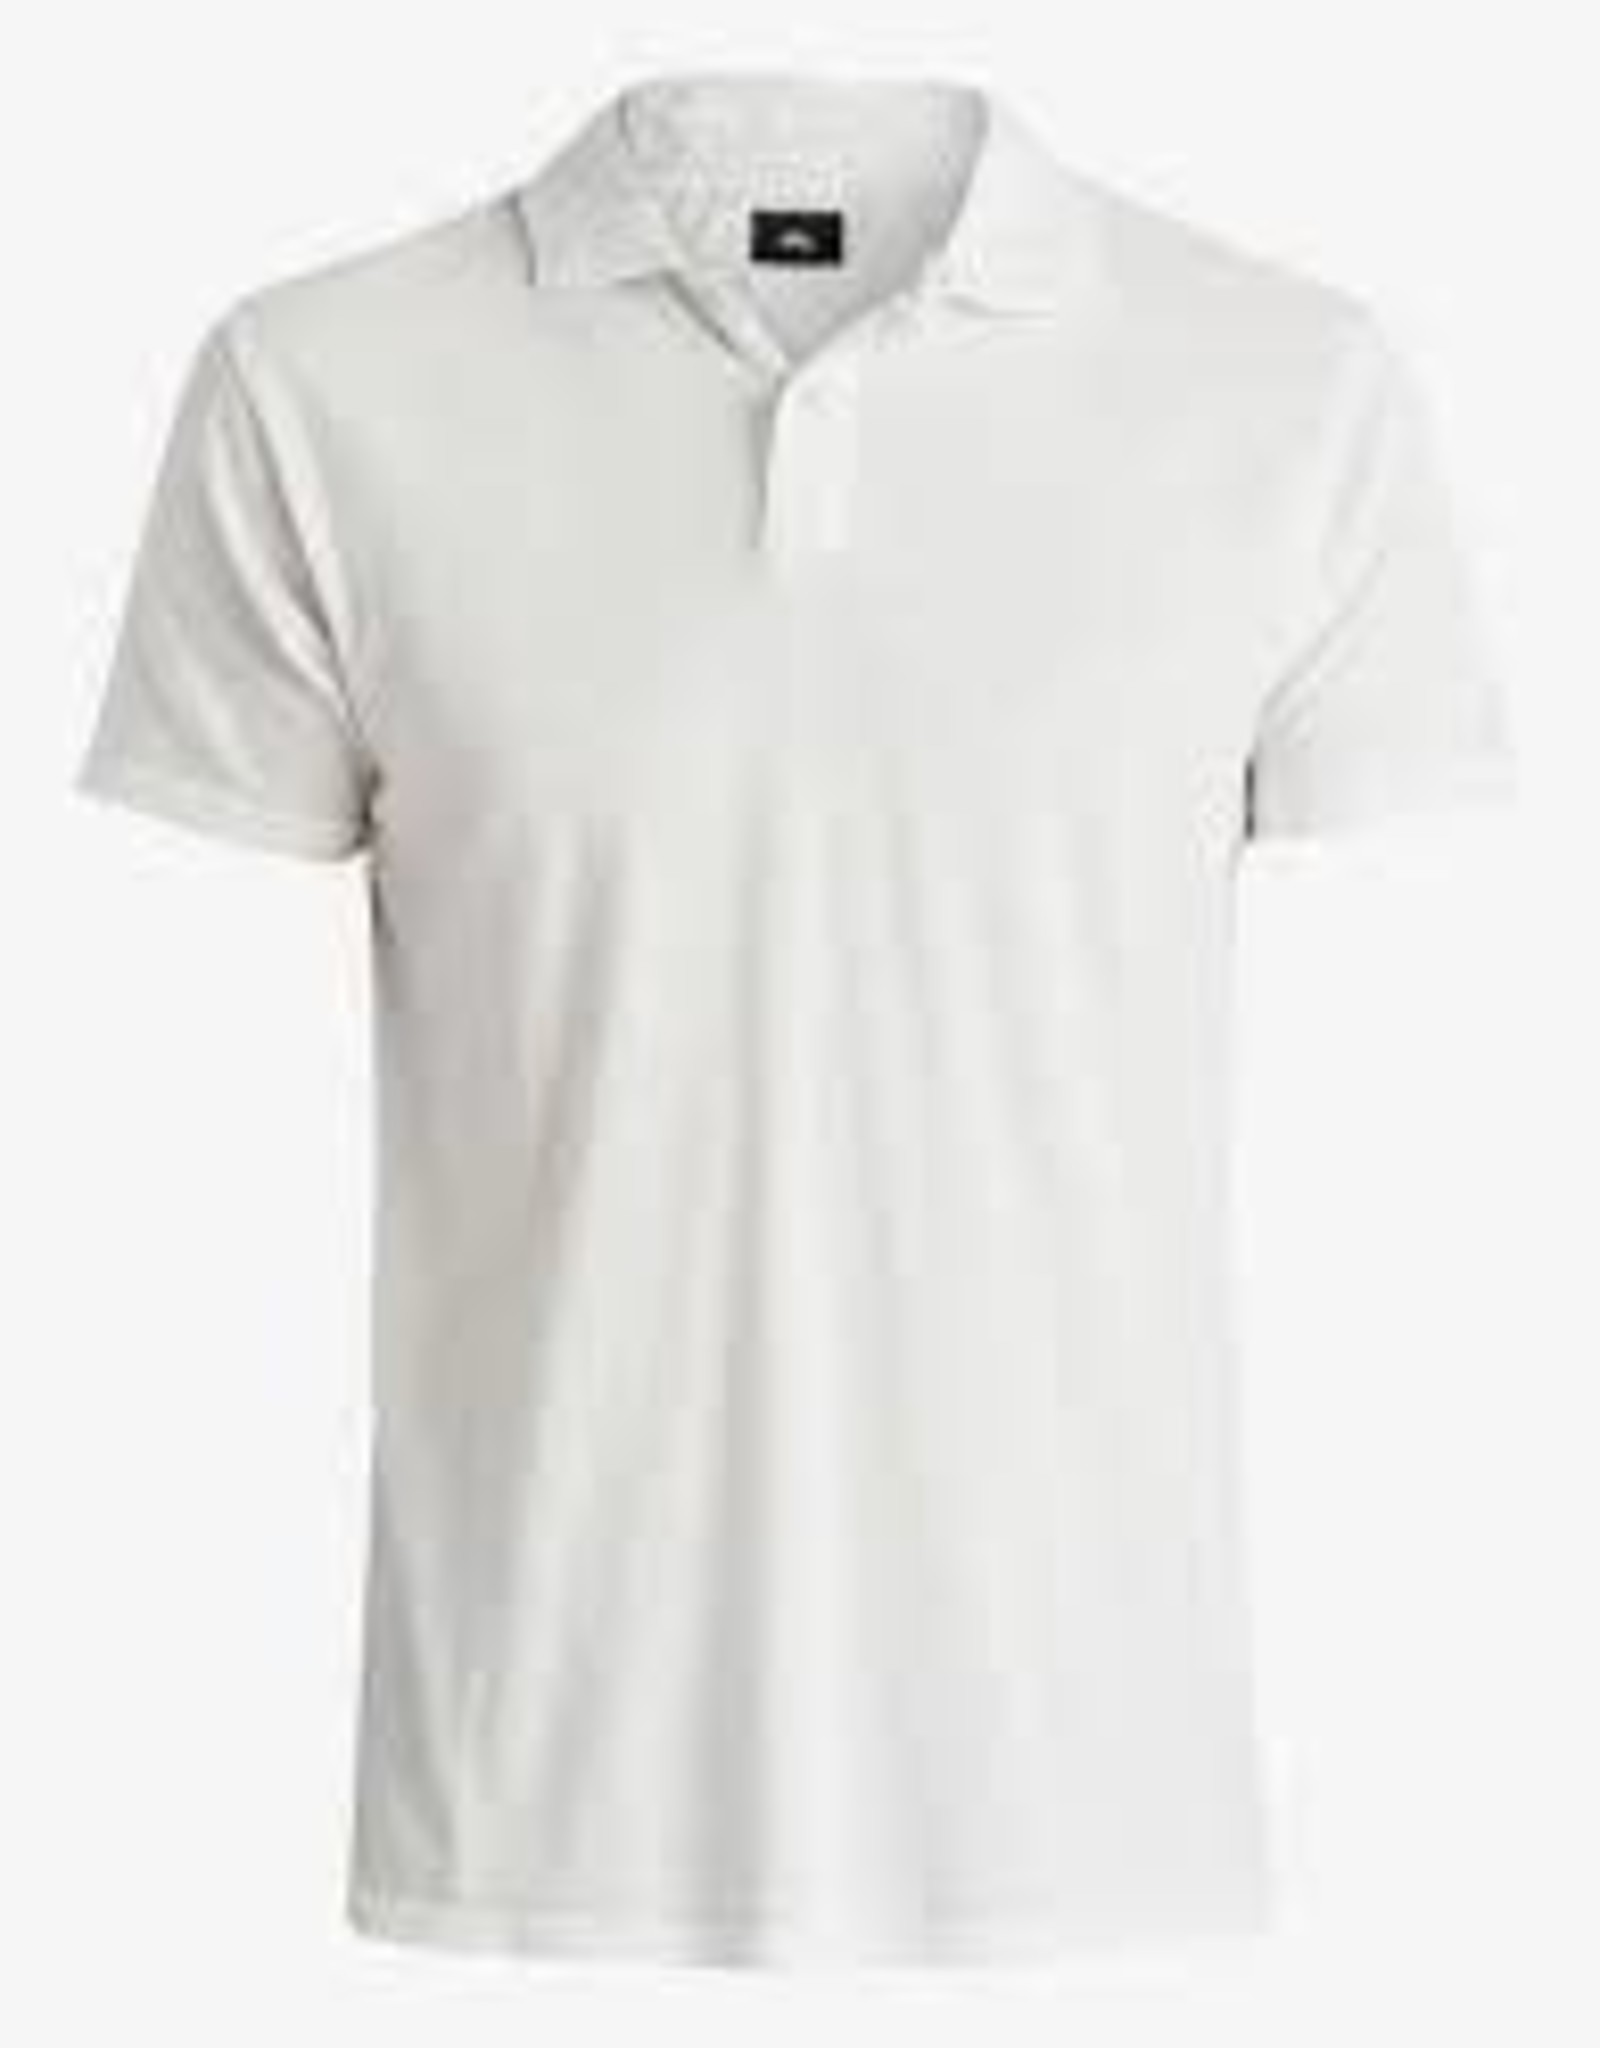 quiksilver quiksilver everyday sun cruise knit